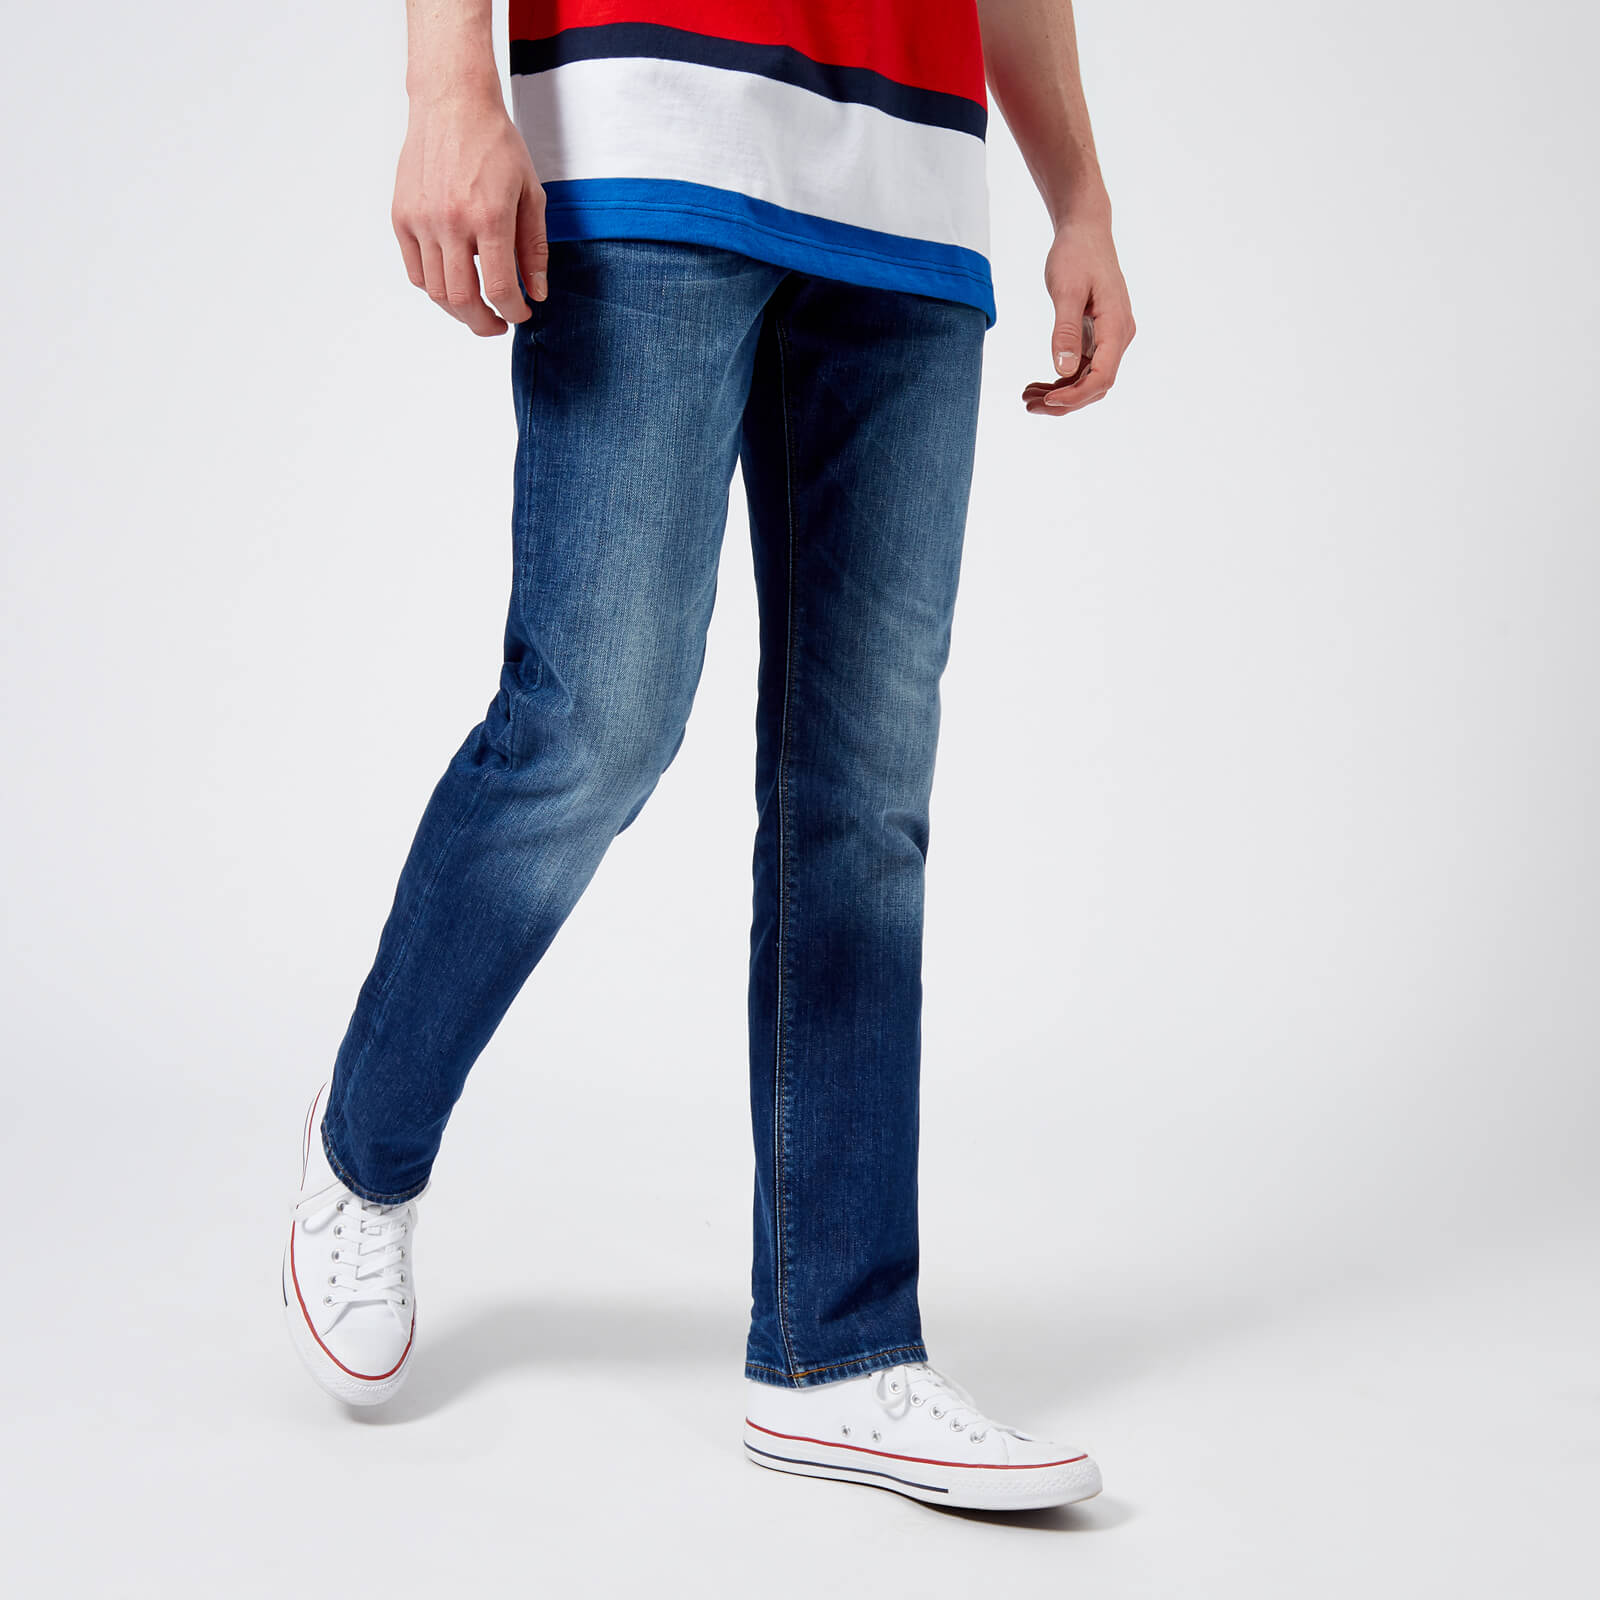 d420f9dc Tommy Hilfiger Men's Core Denton Straight Jeans - Denim Blue Mens Clothing  | TheHut.com